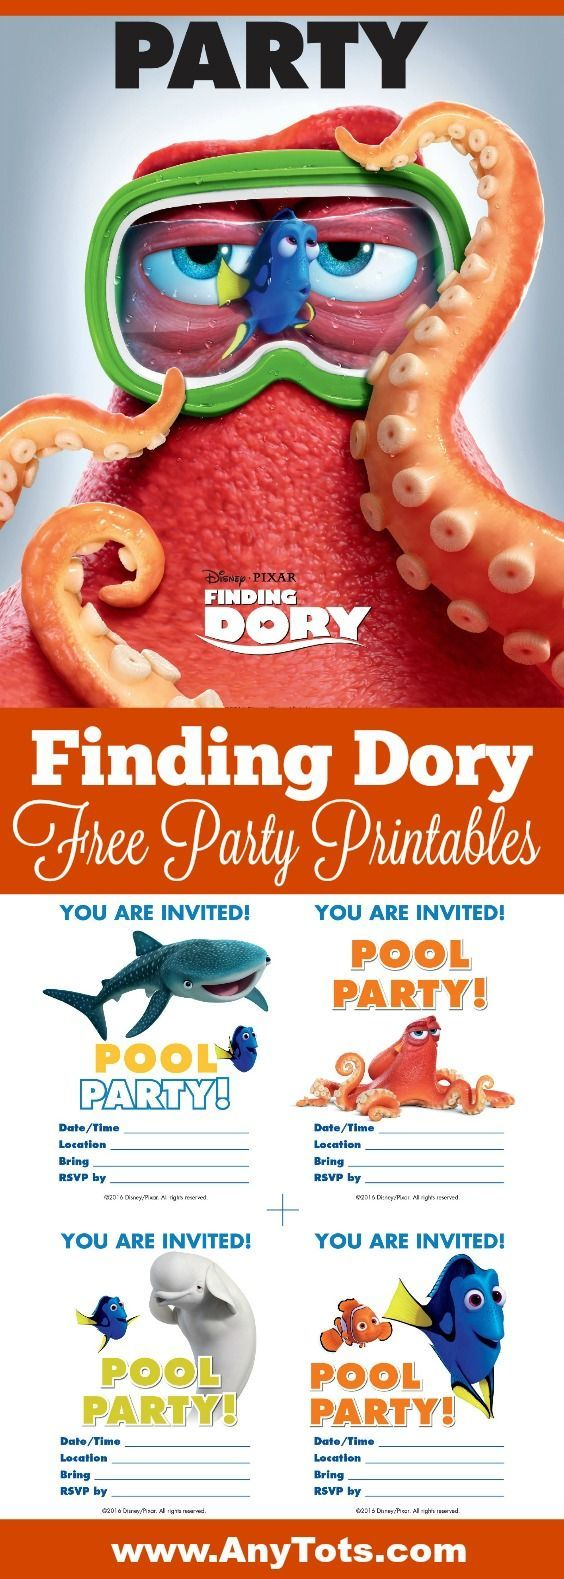 Finding Dory Free Printable Poster for a Fun Finding Dory Party ...